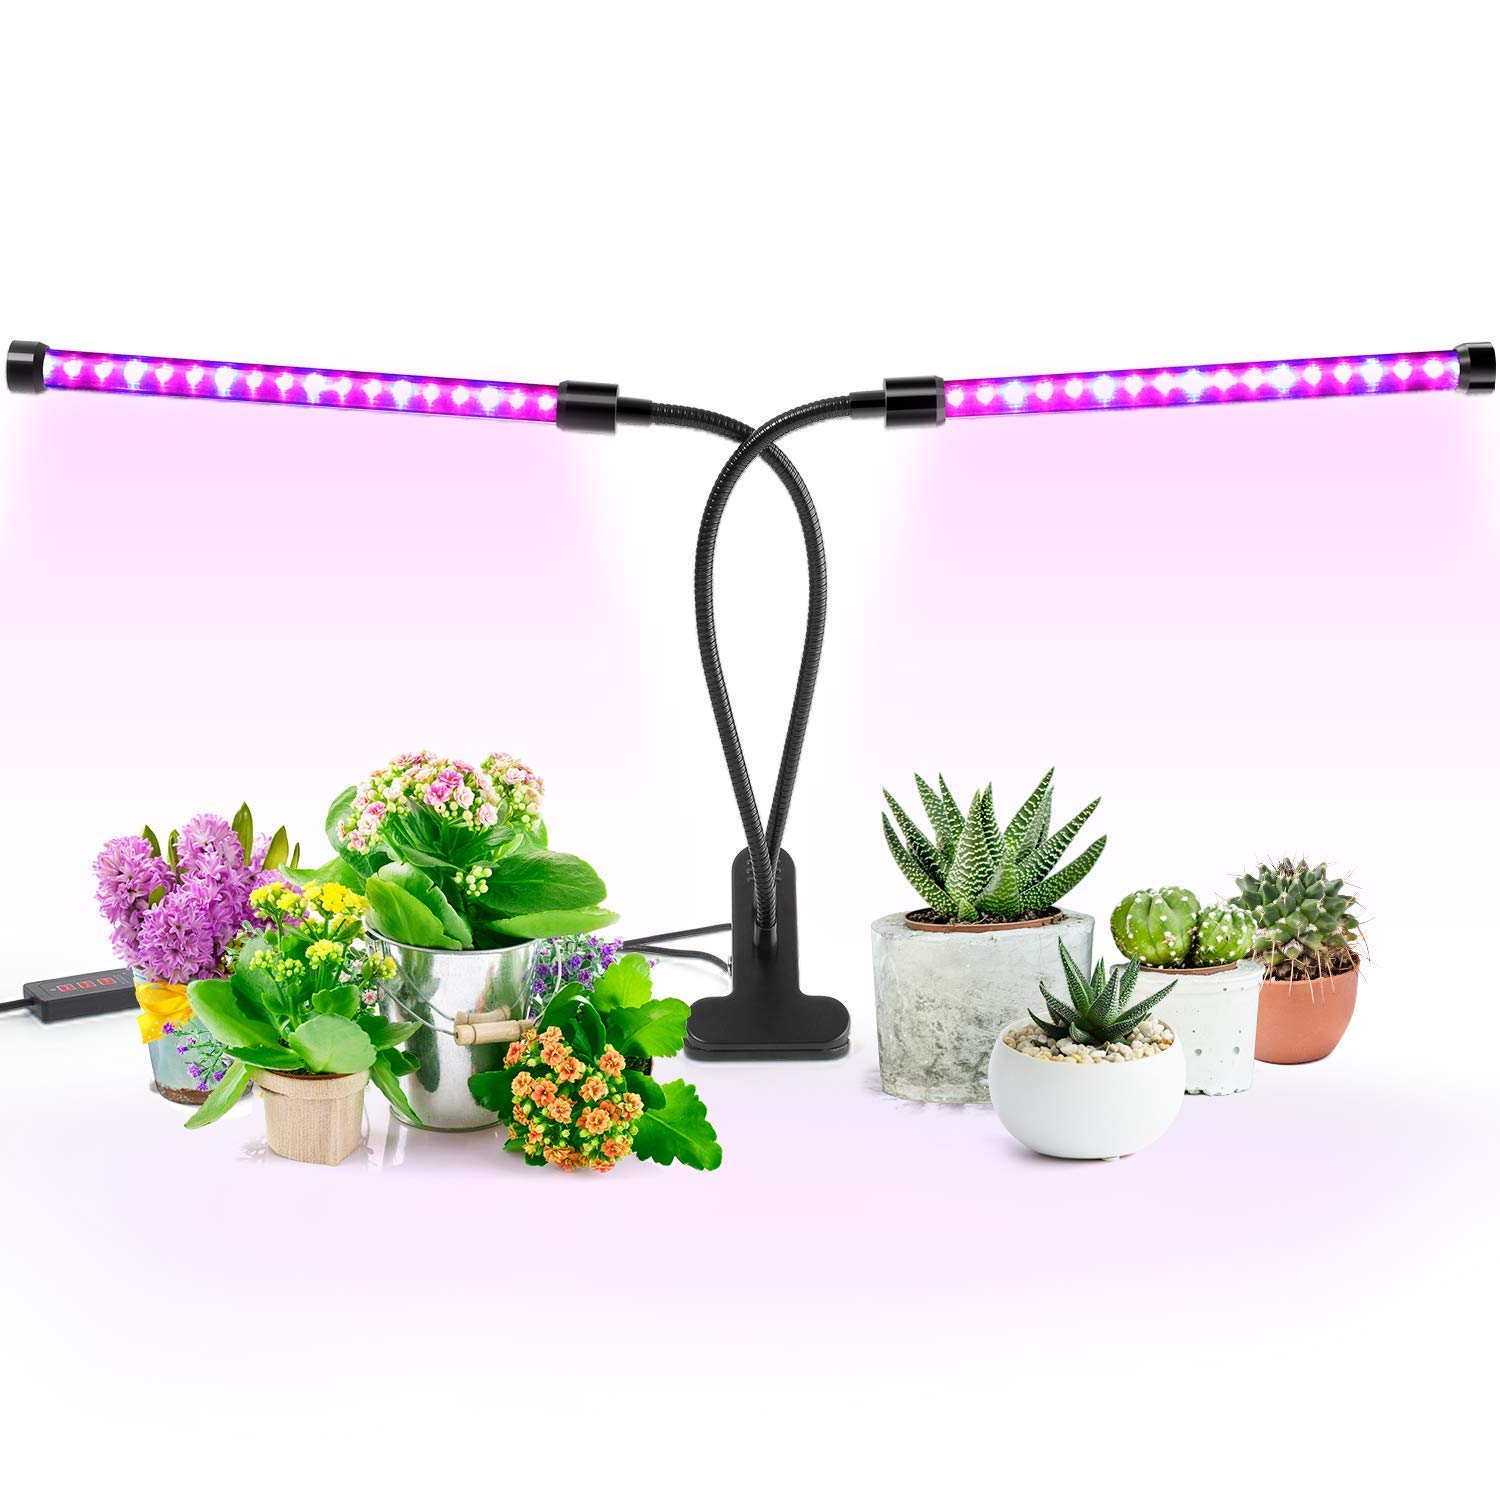 Grow Light, Imikoko 2018 Upgraded Version Timing Dual Head Grow Light 36LED 5 Dimmable Levels Plant LED Grow Lights for Indoor Plants with Red Blue Spectrum, Adjustable Gooseneck, 3 6 12H Timer